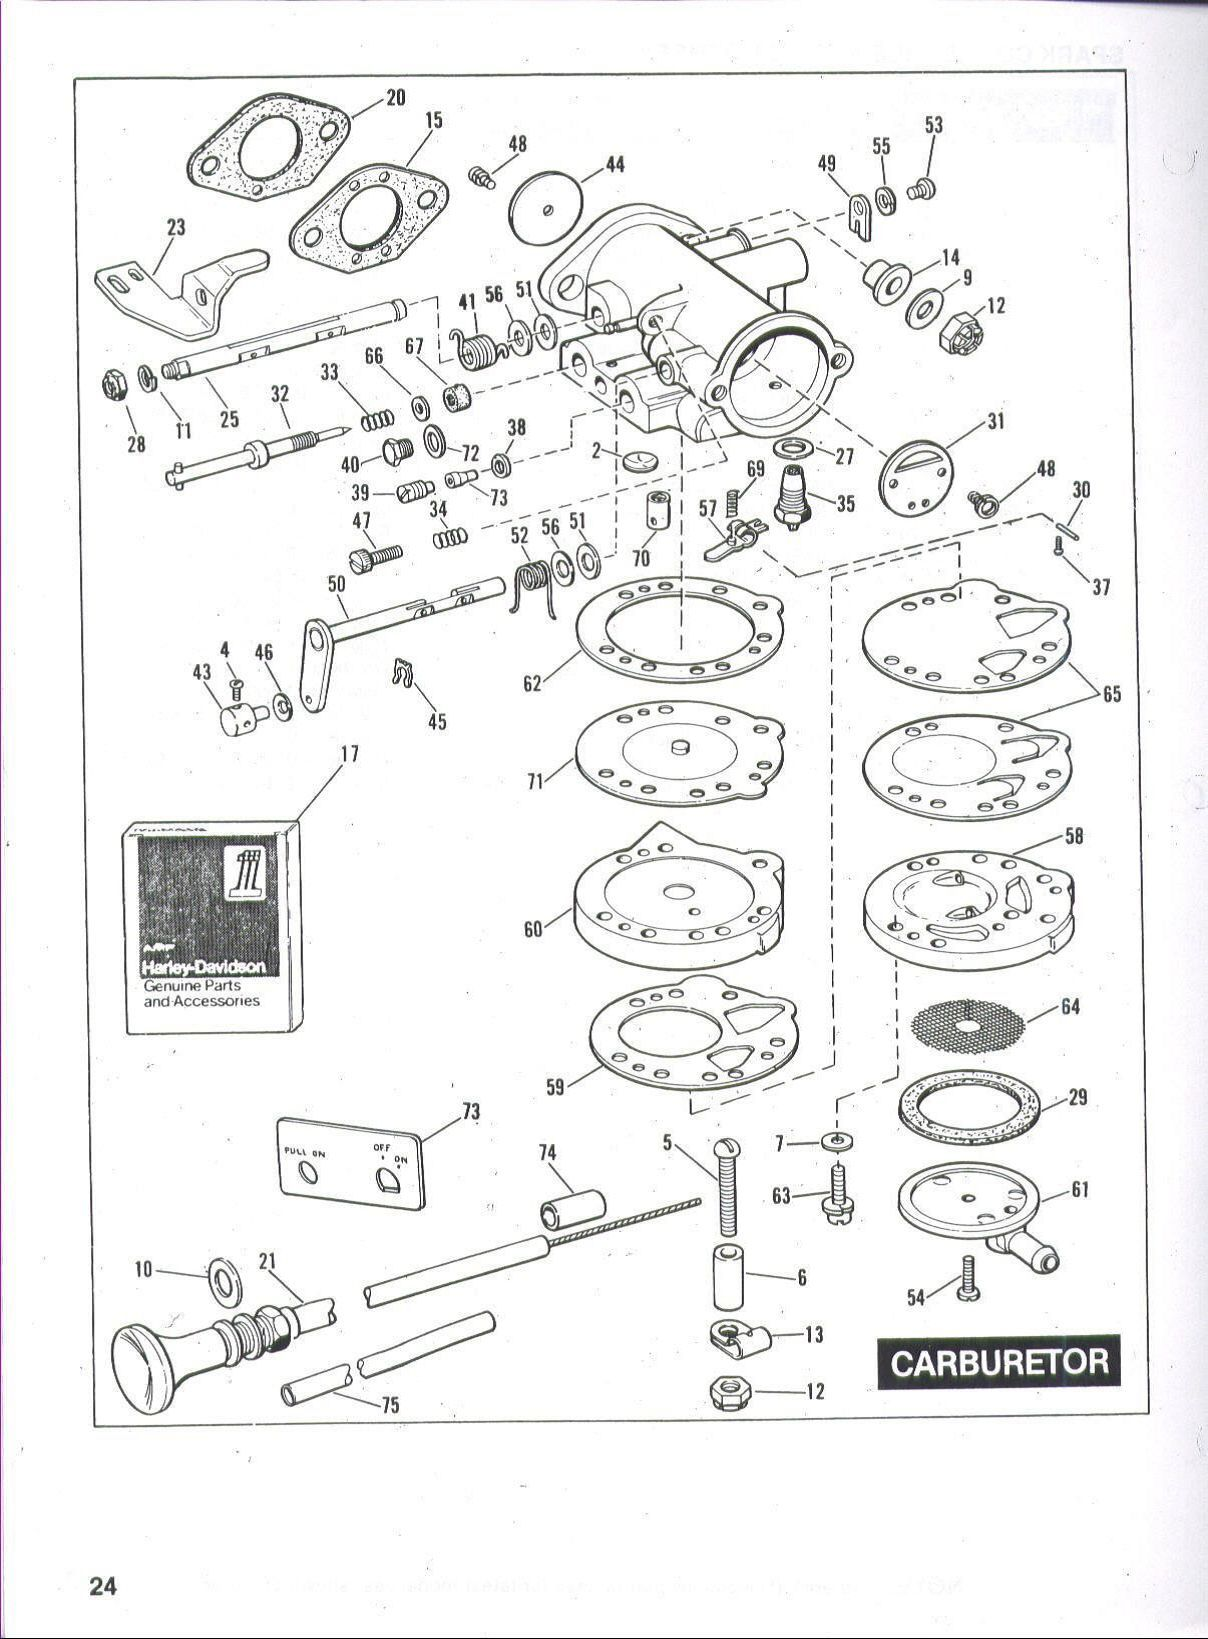 hight resolution of harley davidson golf cart carburetor diagram